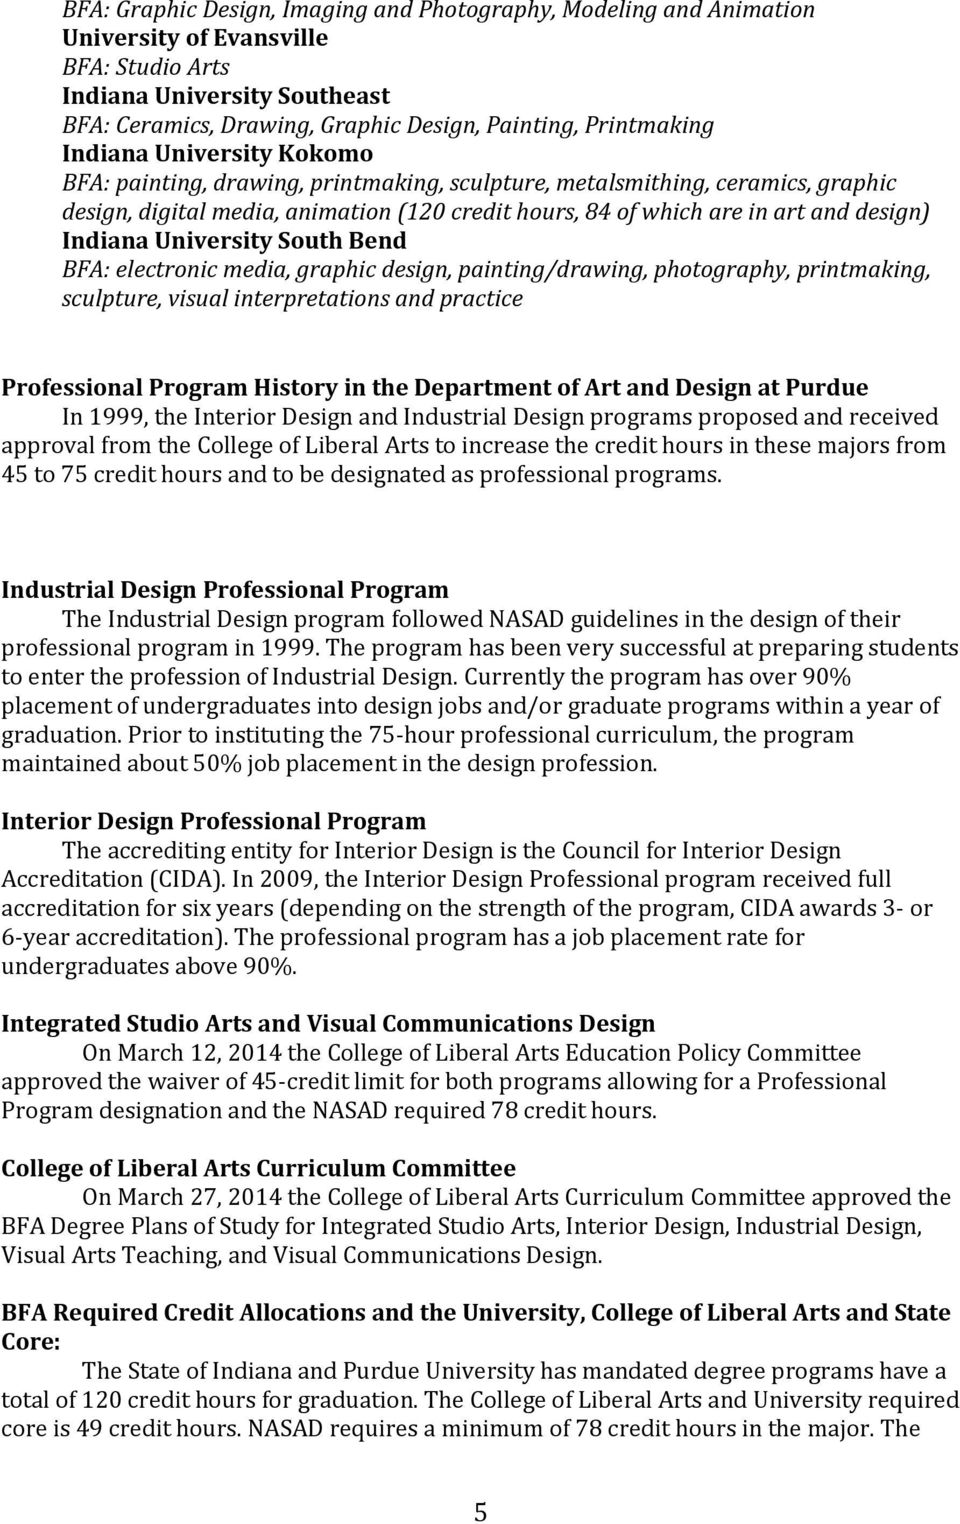 Indiana University South Bend BFA: electronic media, graphic design, painting/drawing, photography, printmaking, sculpture, visual interpretations and practice Professional Program History in the